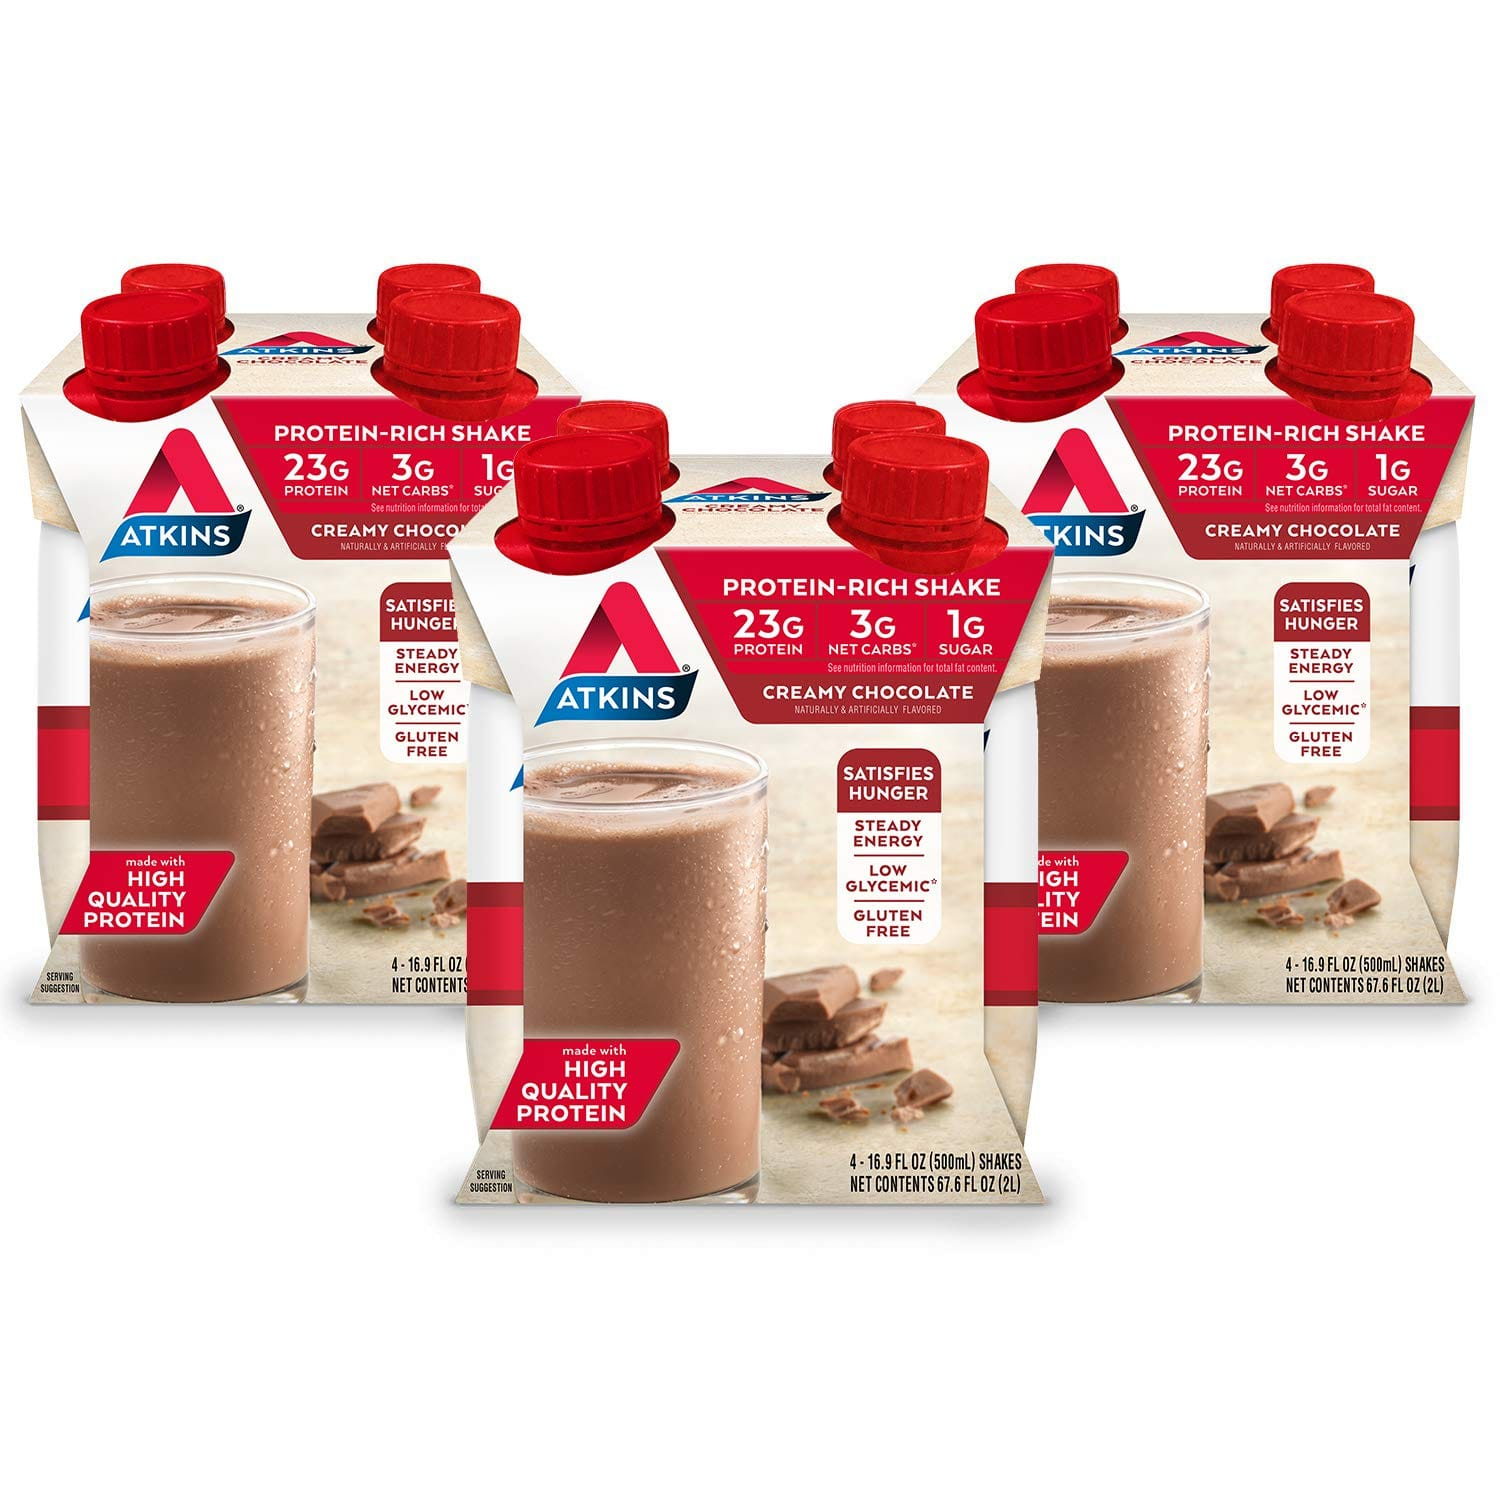 12-Ct. 16.9 Oz. Atkins Meal Size Protein-Rich Shake, Creamy Chocolate or Vanilla Cream for $19.32 with Coupon and S&S.